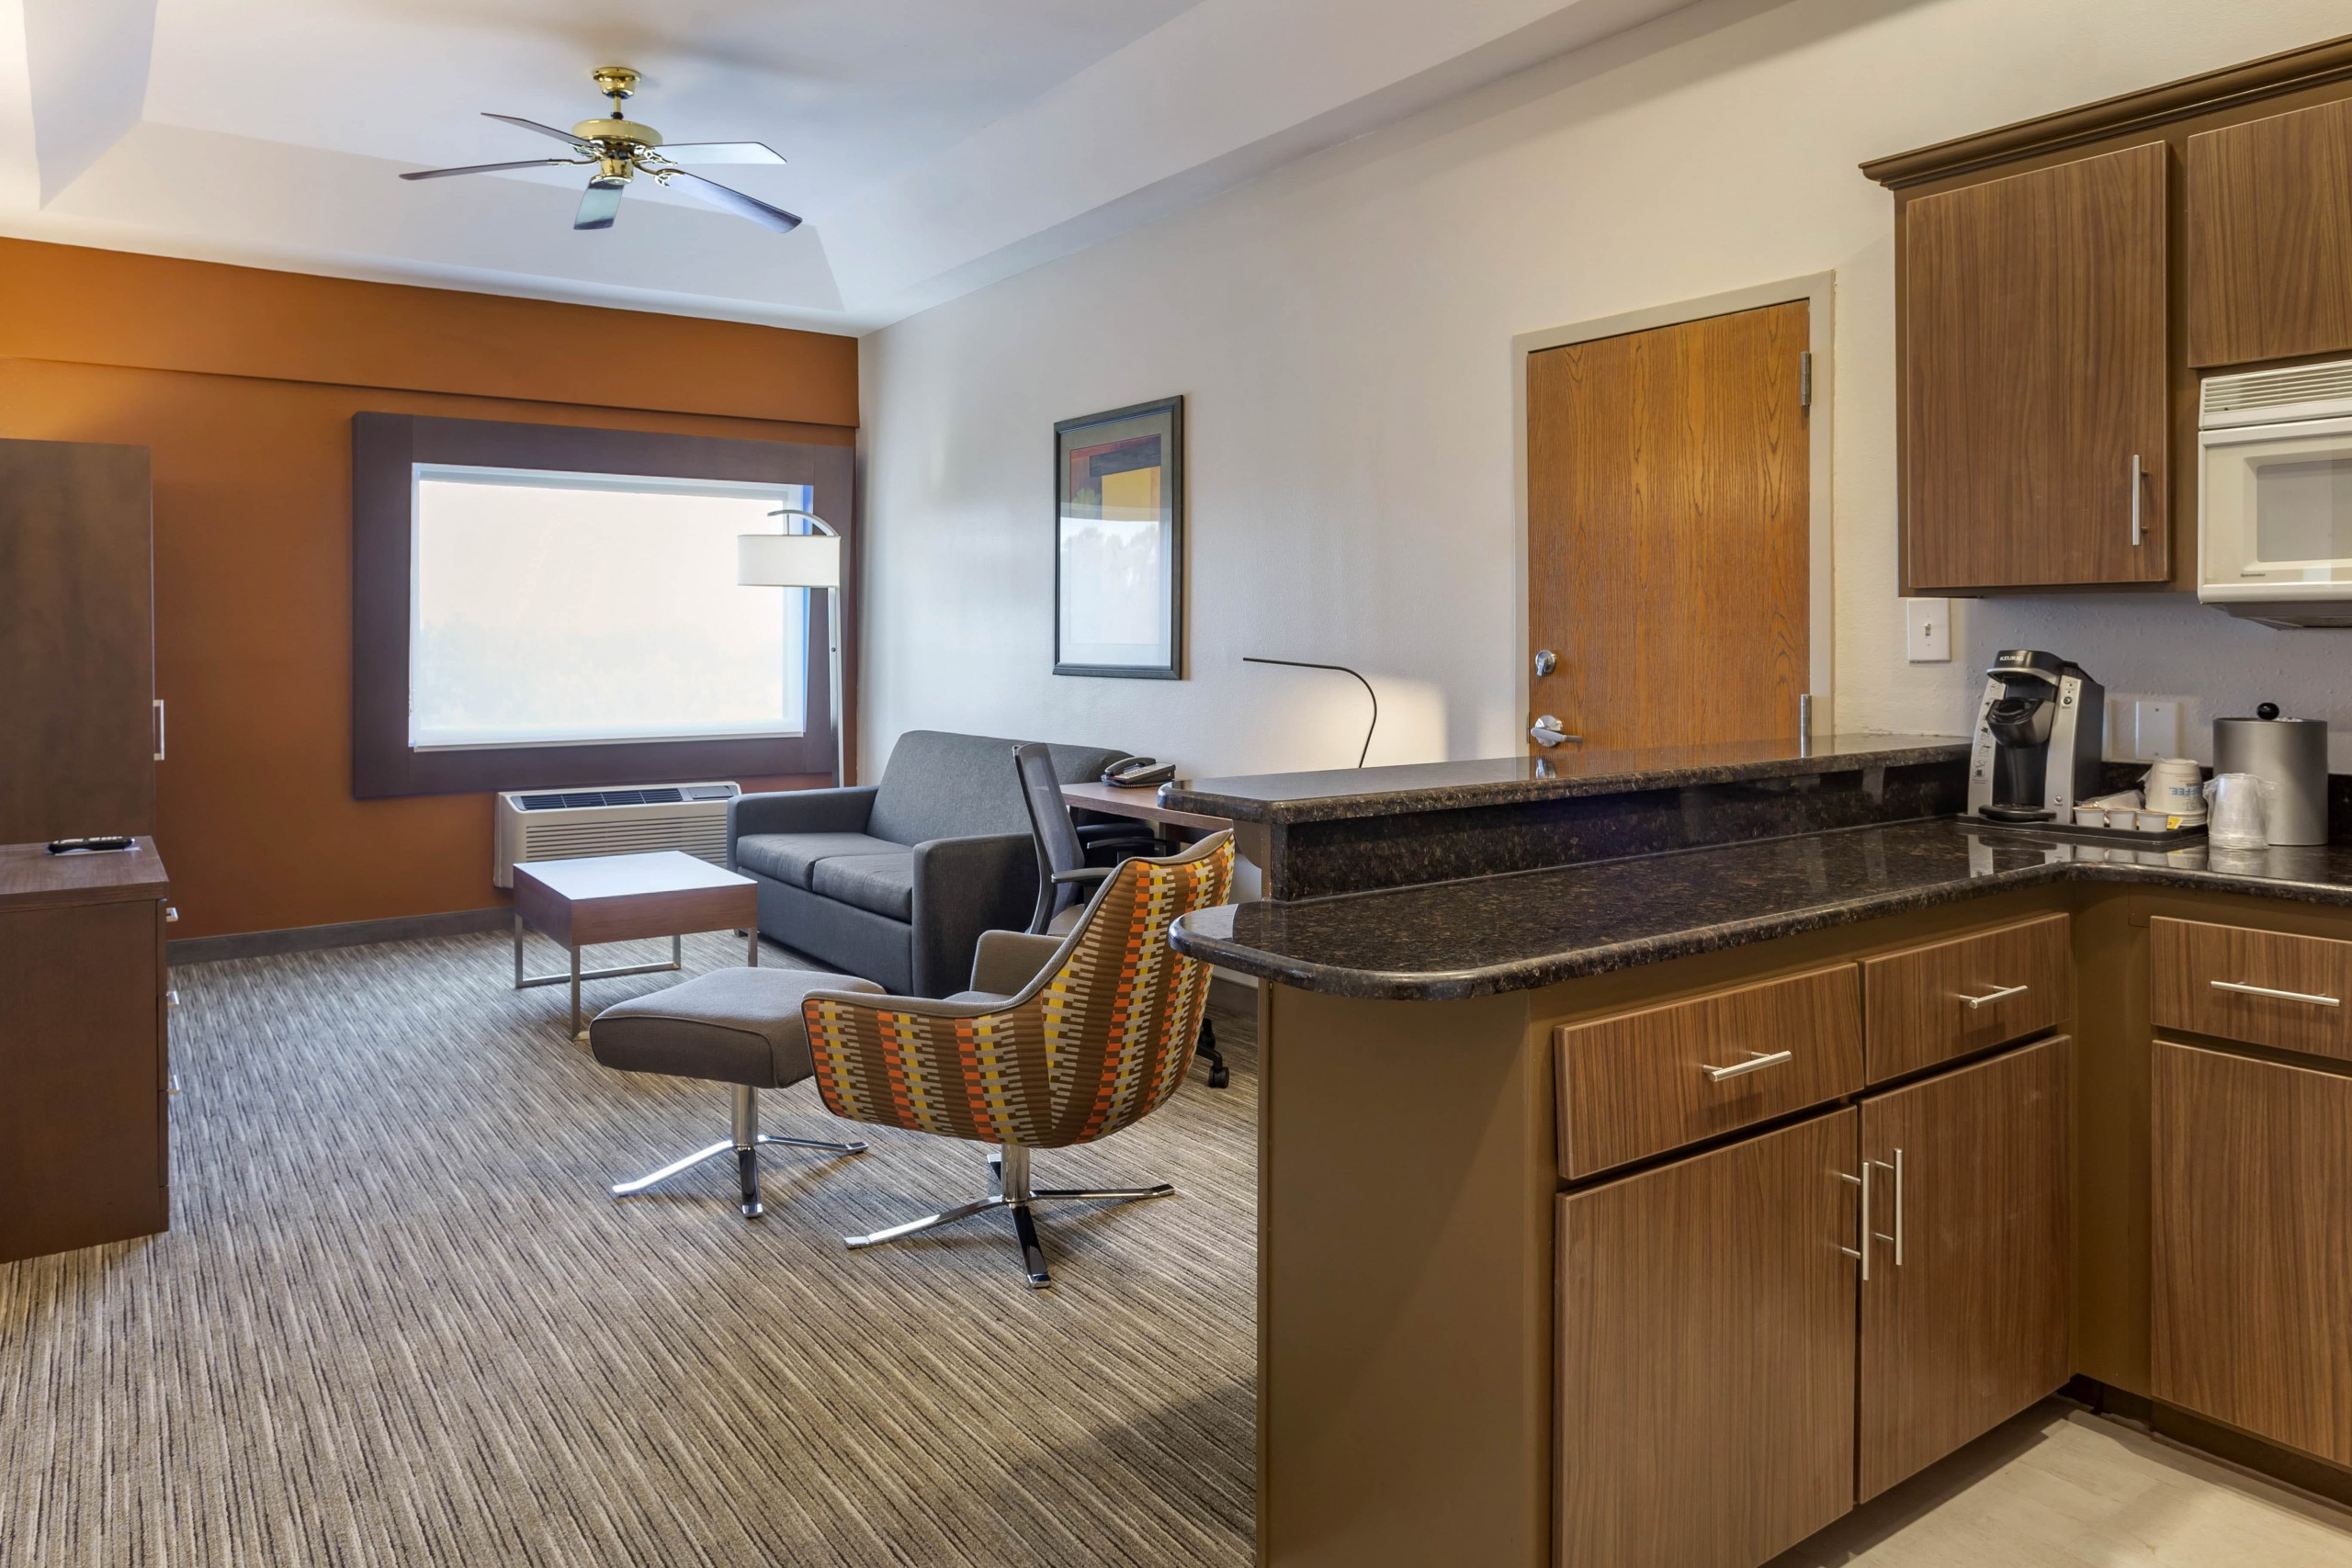 Holiday Inn ExpressvPenthouse suite